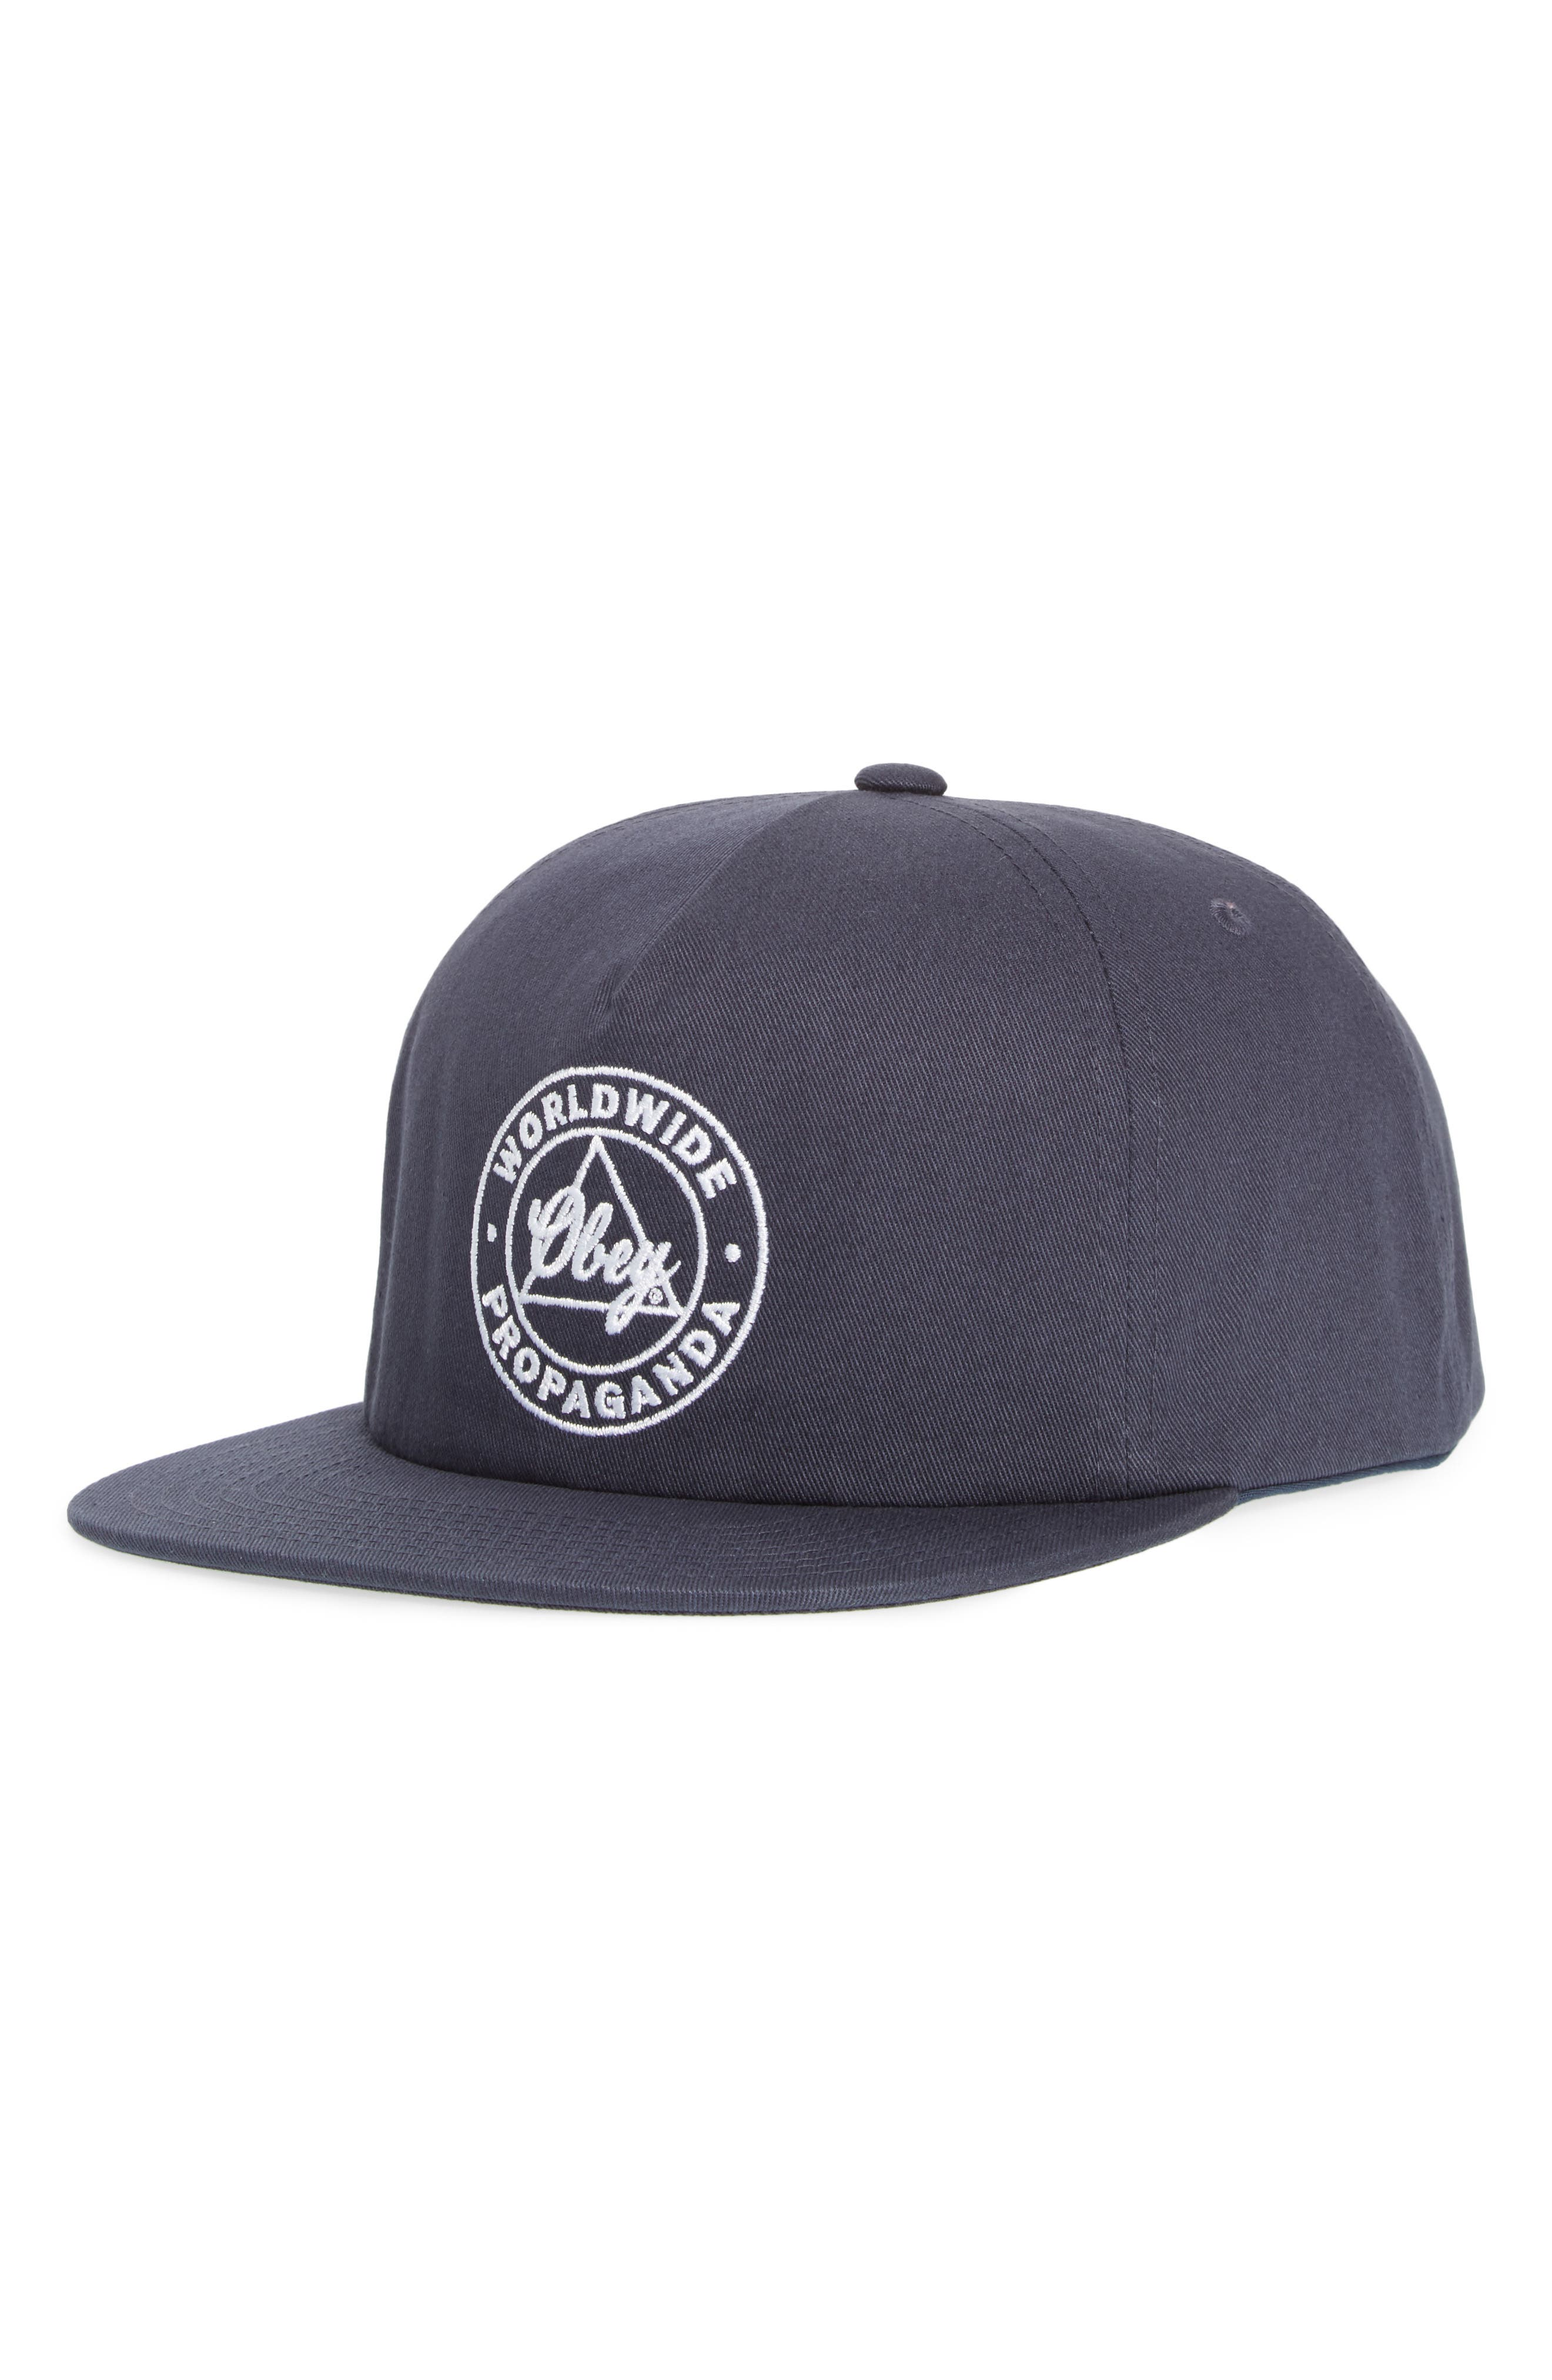 Worldwide Propaganda II Snapback Cap,                         Main,                         color, Navy